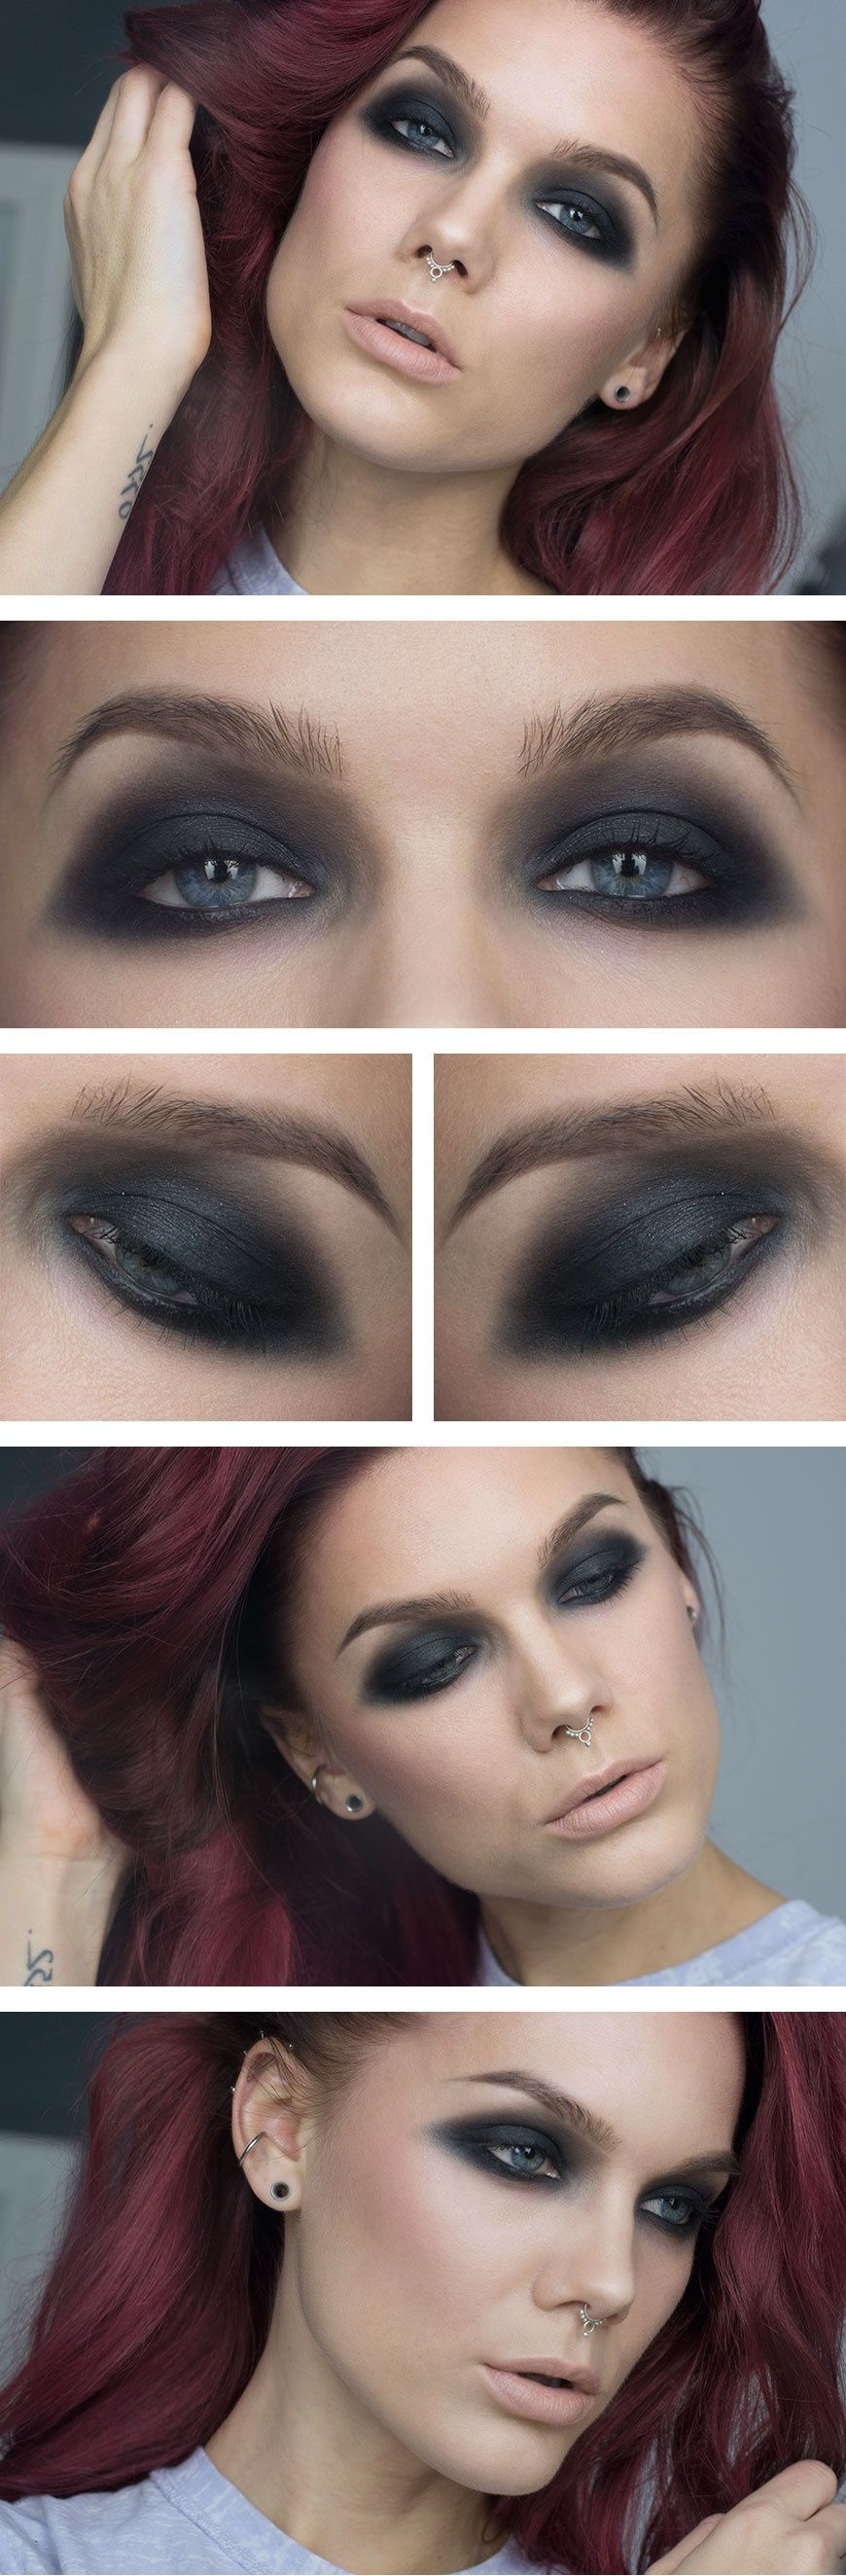 Downwards smokey ♥ Linda Hallberg - incredible makeup artist. Very inspiring -- from her daily makeup blog. | Inspiration for upcoming projects by Adagio Images at www.adagio-images.com/modeling or www.facebook.com/adagioimages | #makeup #makeupinspiration ♥